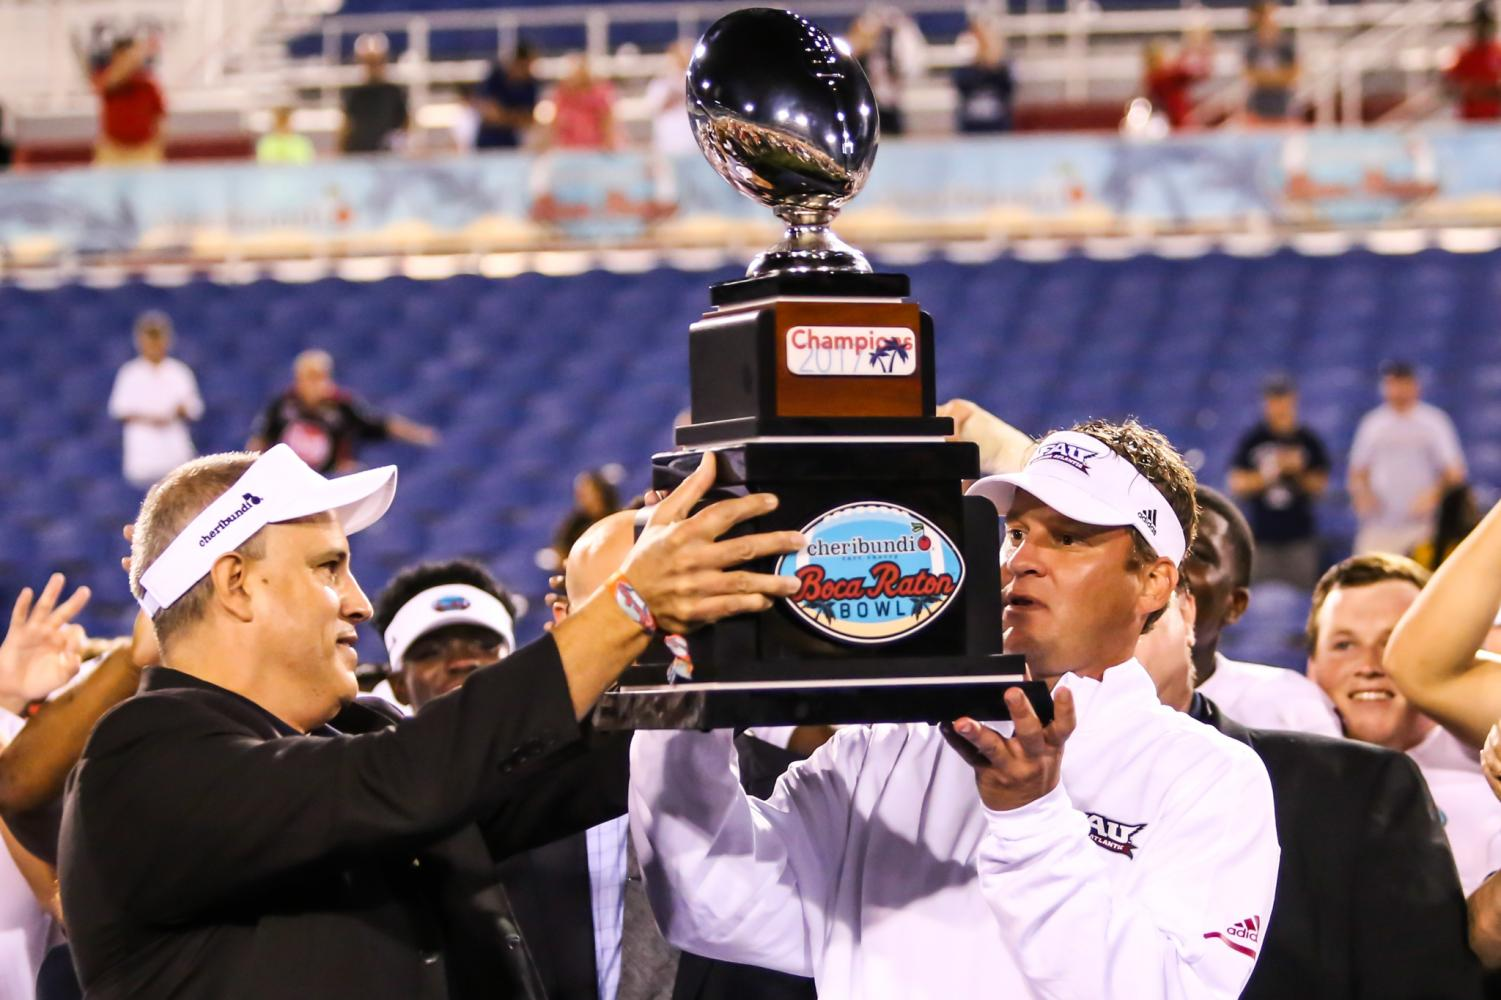 FAU head coach Lane Kiffin is handed the Cheribundi Boca Raton Bowl trophy during the trophy ceremony after FAU's 50-3 victory Saturday night. Alexander Rodriguez | Photo Editor